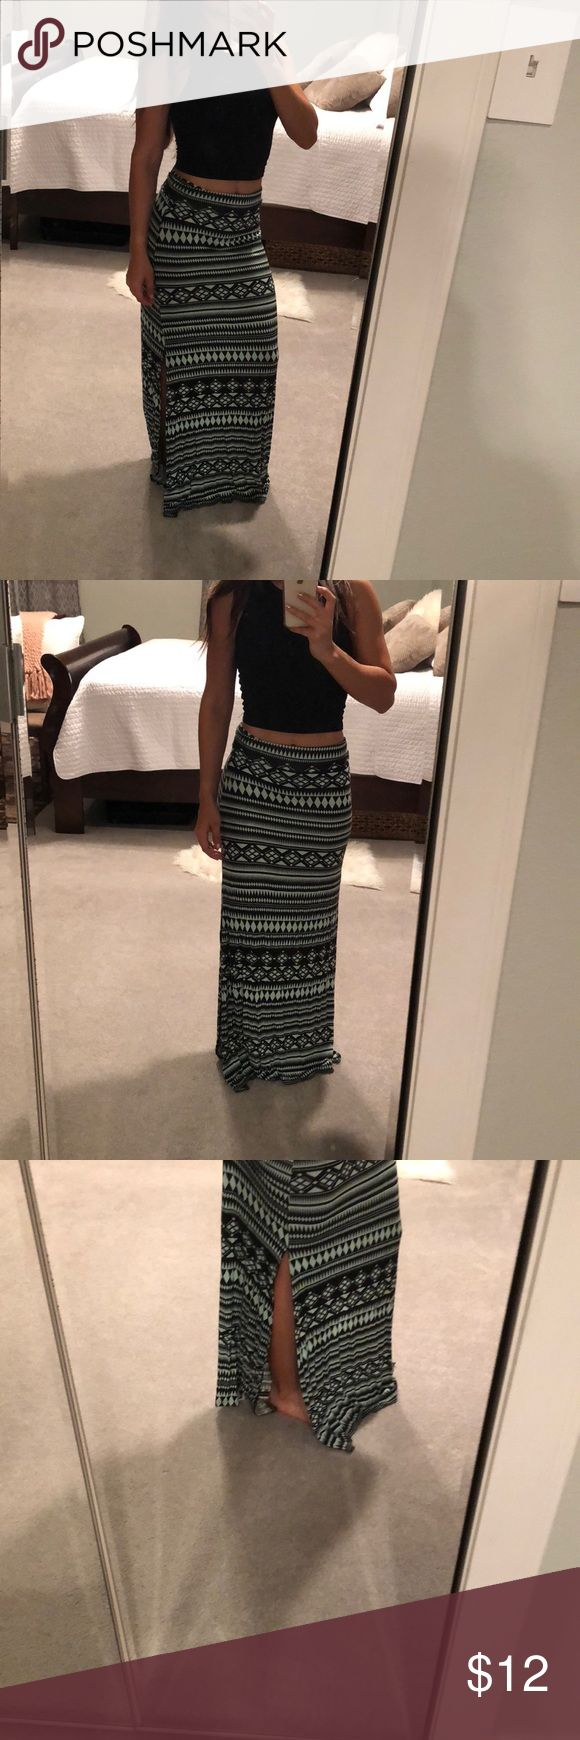 Tribal maxi skirt Turquoise and black tribal maxi skirt, I'm about 5'1 and it's a feel inches too long for flat sandal, would be best to wear with something that hat a little heel. Not see though, nice soft fabric. Optional fold down waist to make it shorter or longer. Charlotte Russe Skirts Maxi